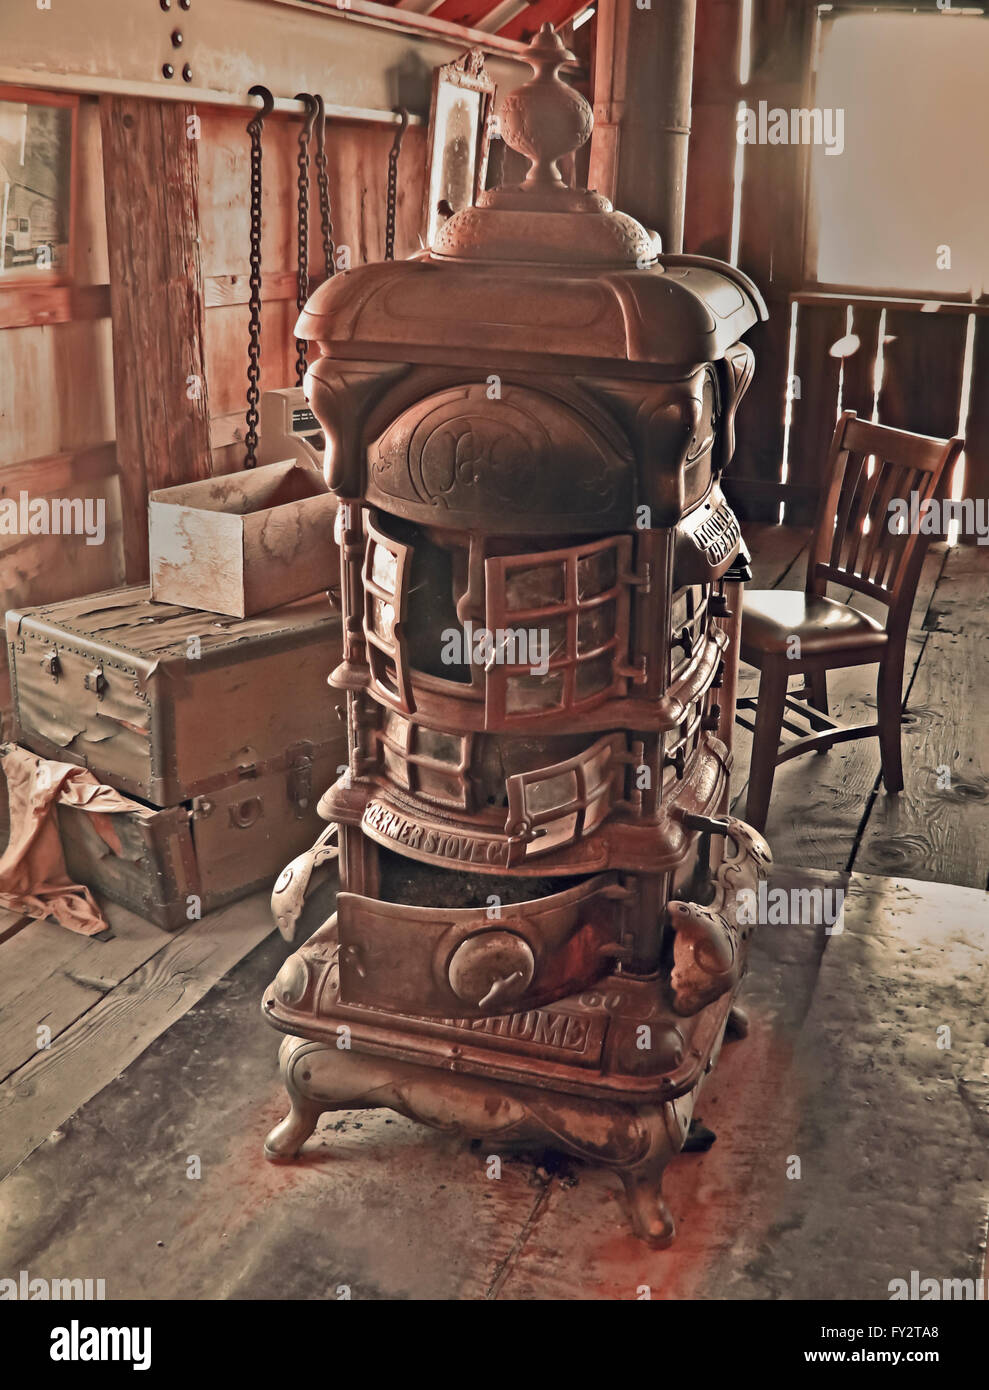 Vintage stove in abandoned barn in sepia colors  on wooden floor. Stock Photo